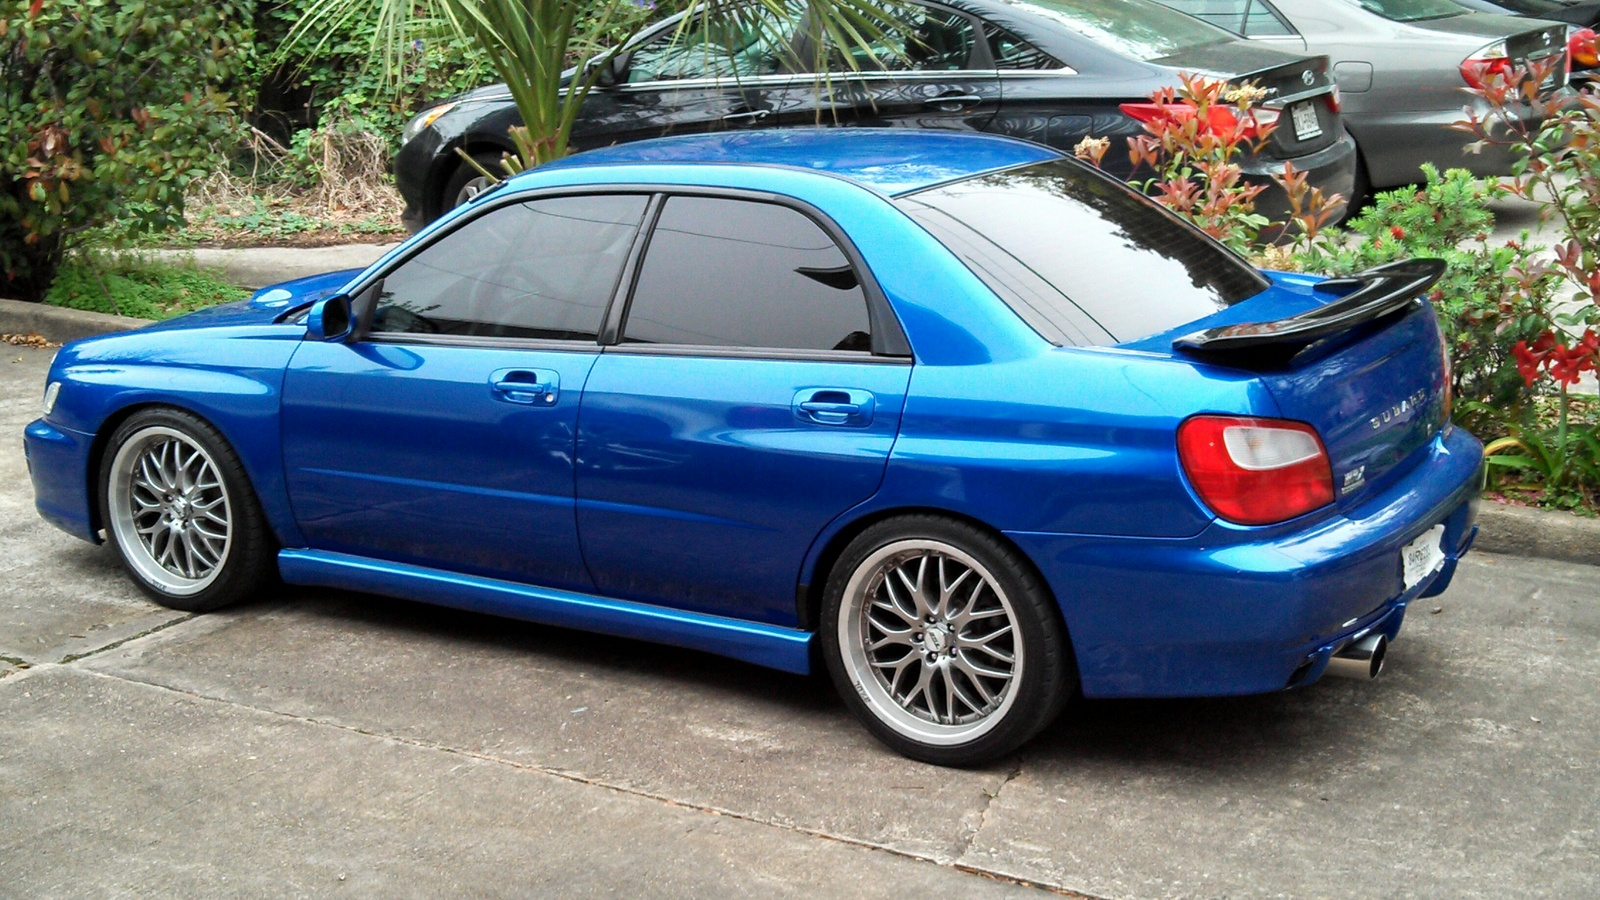 picture of 2002 subaru impreza wrx base exterior. Black Bedroom Furniture Sets. Home Design Ideas